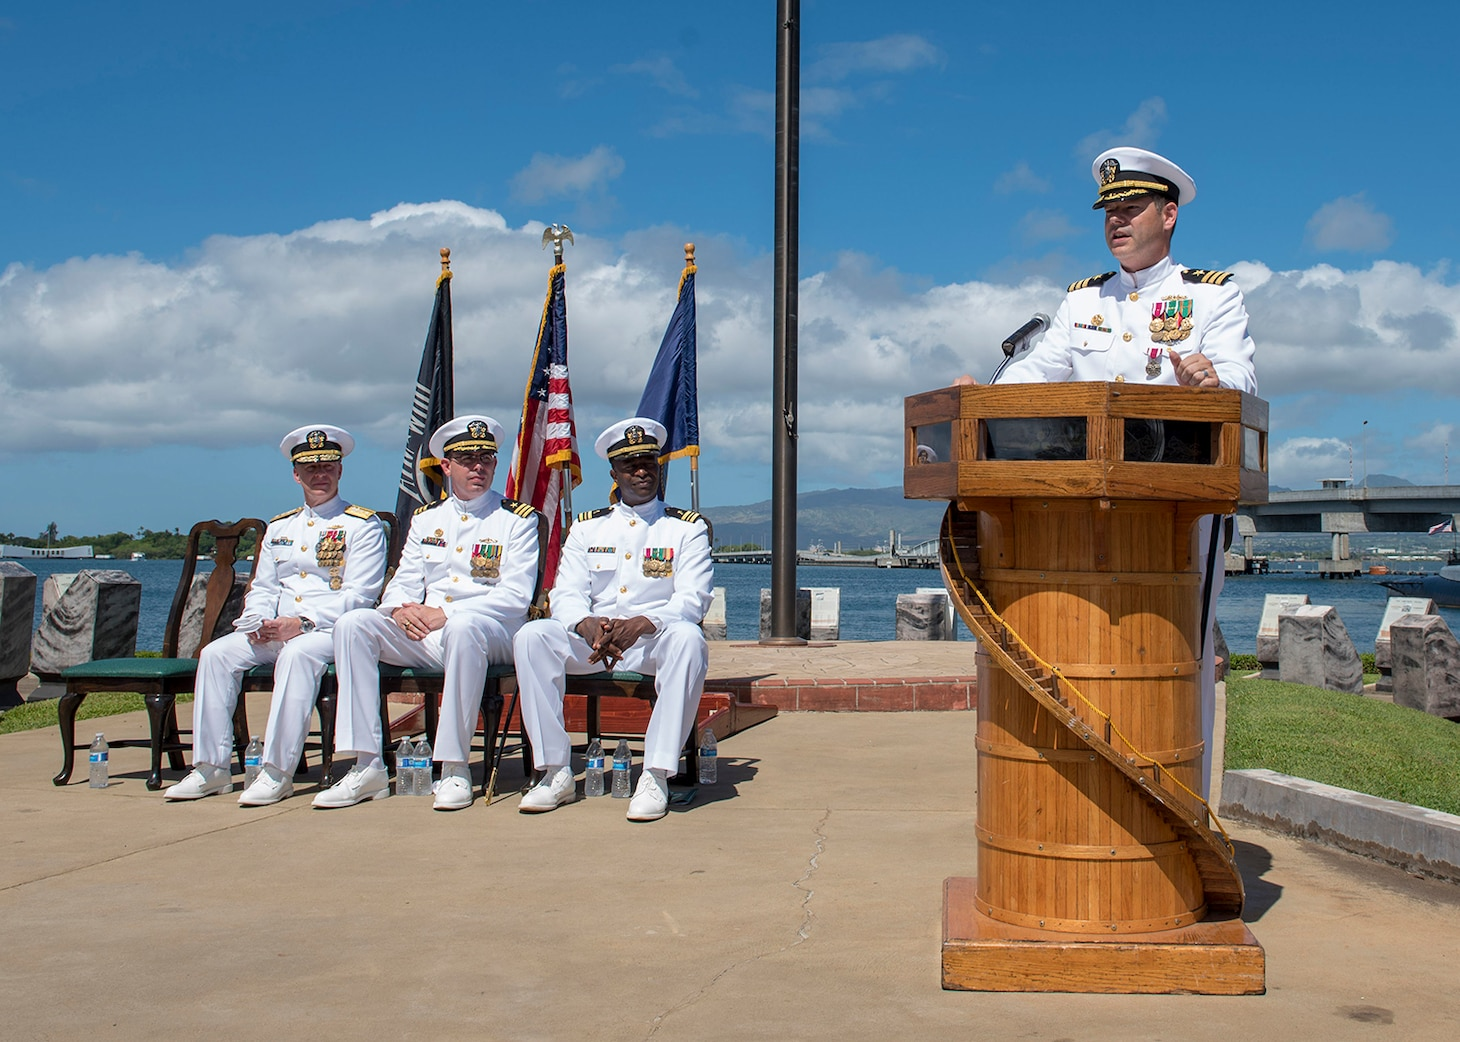 PEARL HARBOR (Sep. 07, 2018) - Cmdr. Christopher Lindberg addresses guests during the change of command ceremony of the Naval Submarine Support Command Pearl Harbor at the USS Bowfin Submarine Museum and Park in Pearl Harbor, Hawaii, Sep. 07.